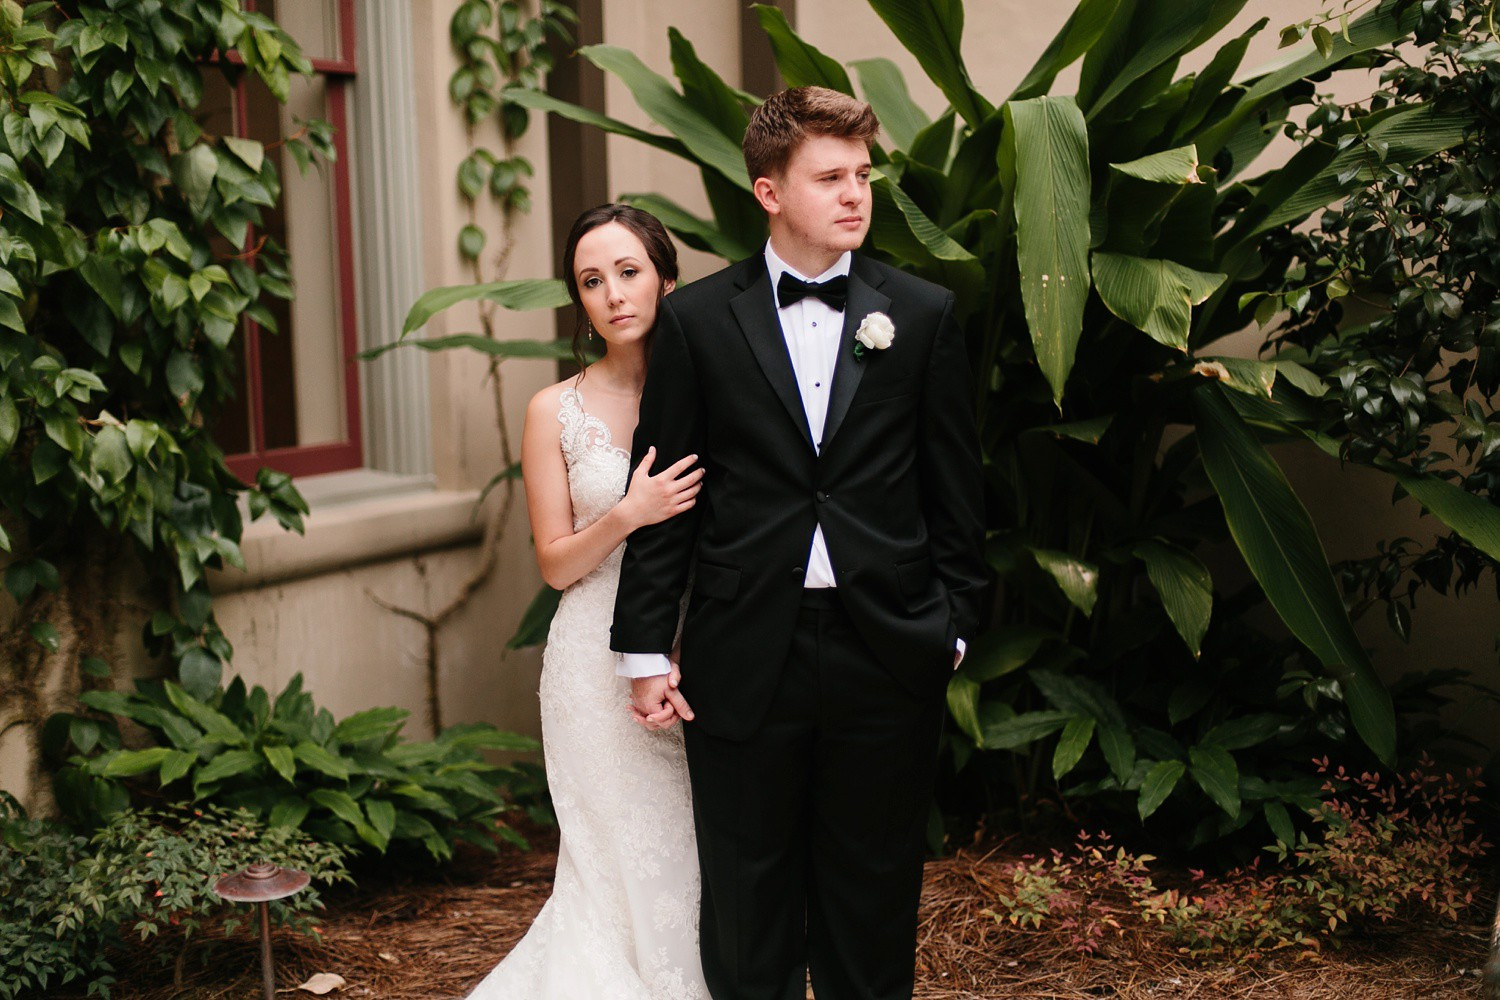 Lauren + Richard | a NOLA wedding